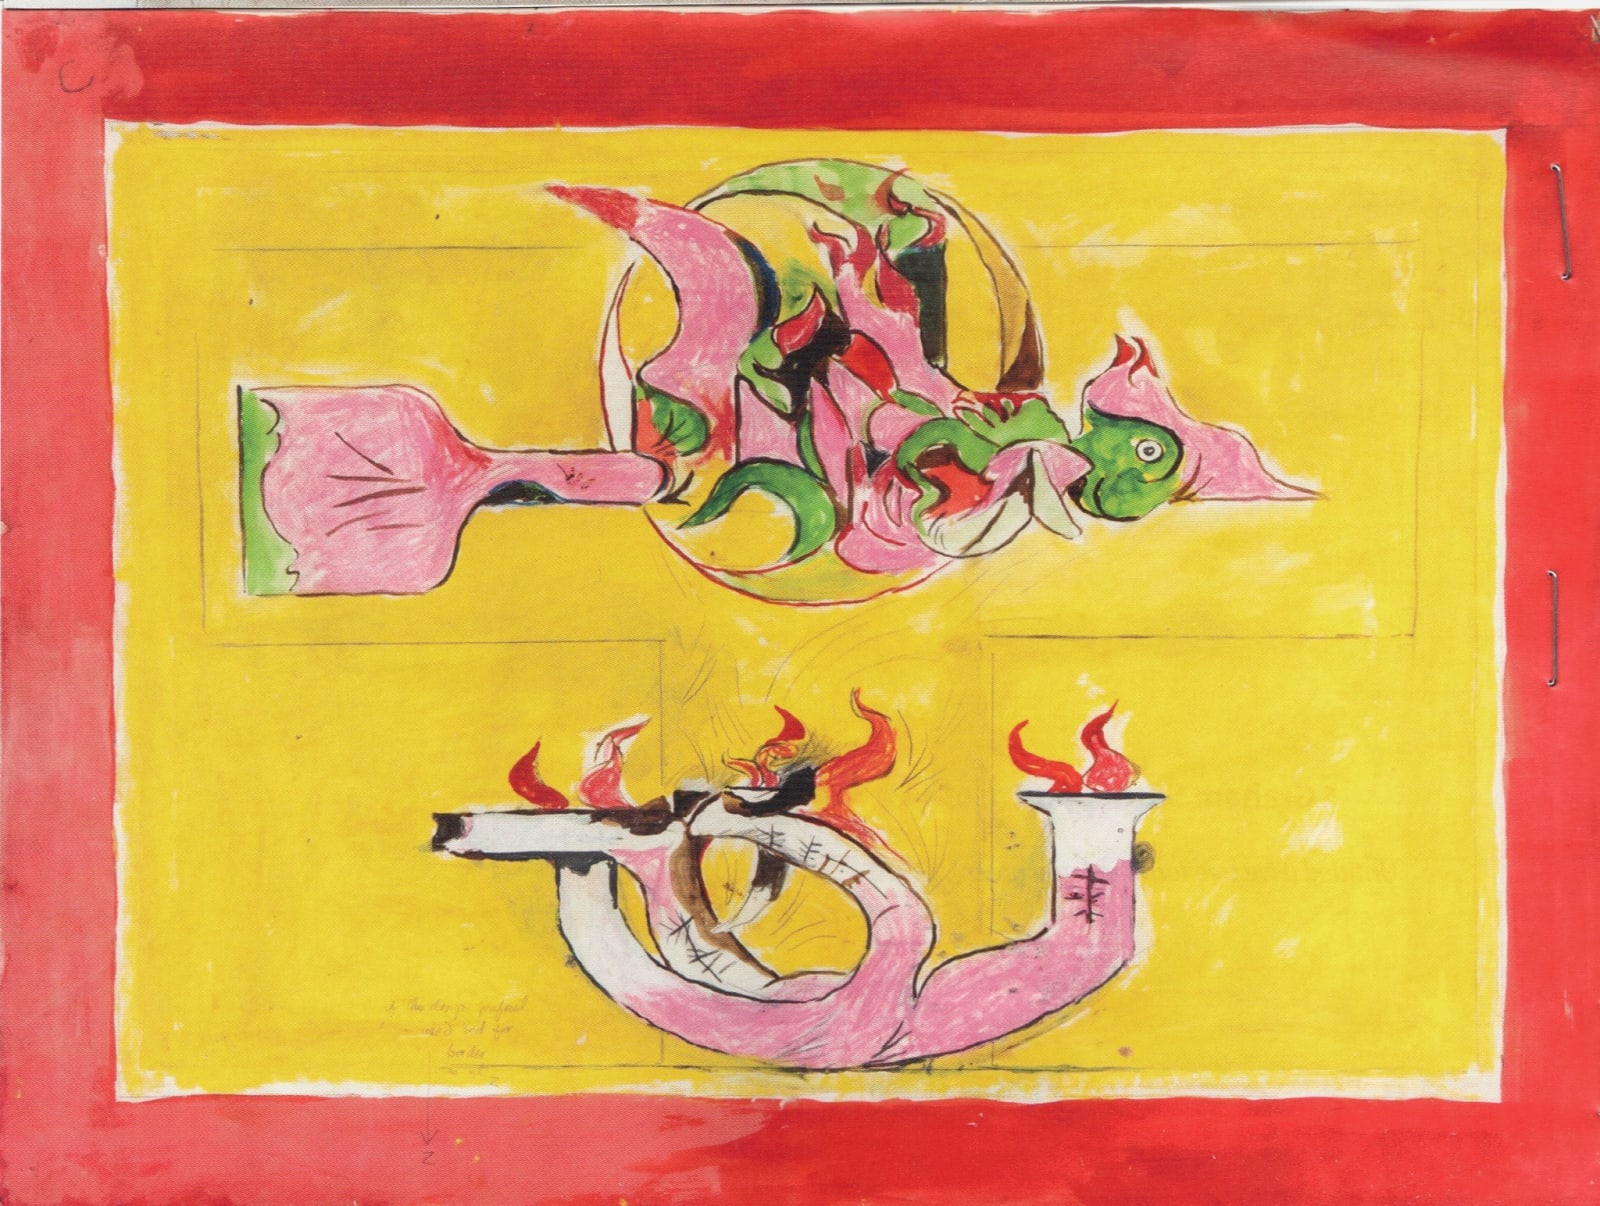 Graham SUTHERLAND (1903 – 1980) Firebird (Study for carpet design), c.1975 Coloured chalks, watercolour and graphite on paper 26 ¼ x 35 ¼ inches / 66.7 x 89.5 cm Inscribed with various notes and instructions on pencil by the artist